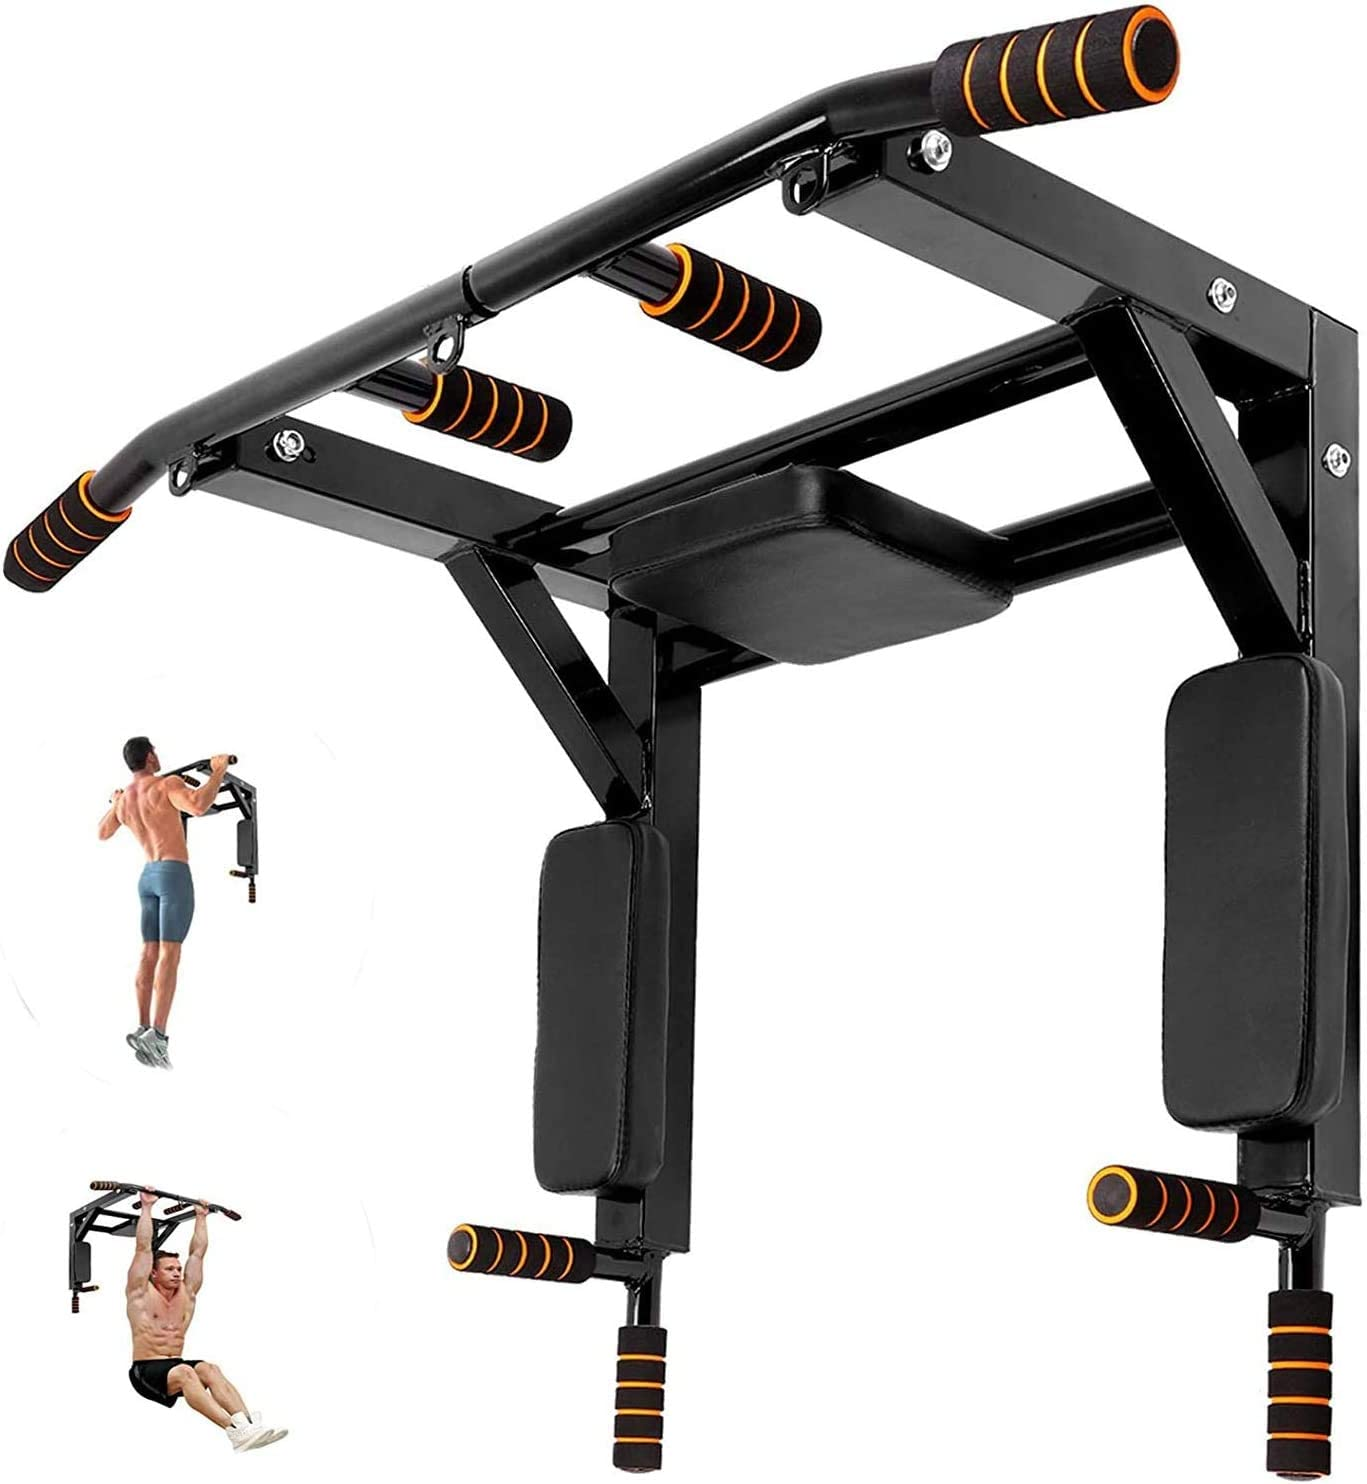 Wall Mounted Pull Up Bar Dip Station 2 in 1 Multifunctional Chin Up Bar, for Full-Body Strength Workouts Home Indoor Gym, Power Tower Exercise Training Equipment Fitness Set Support to 440Lbs